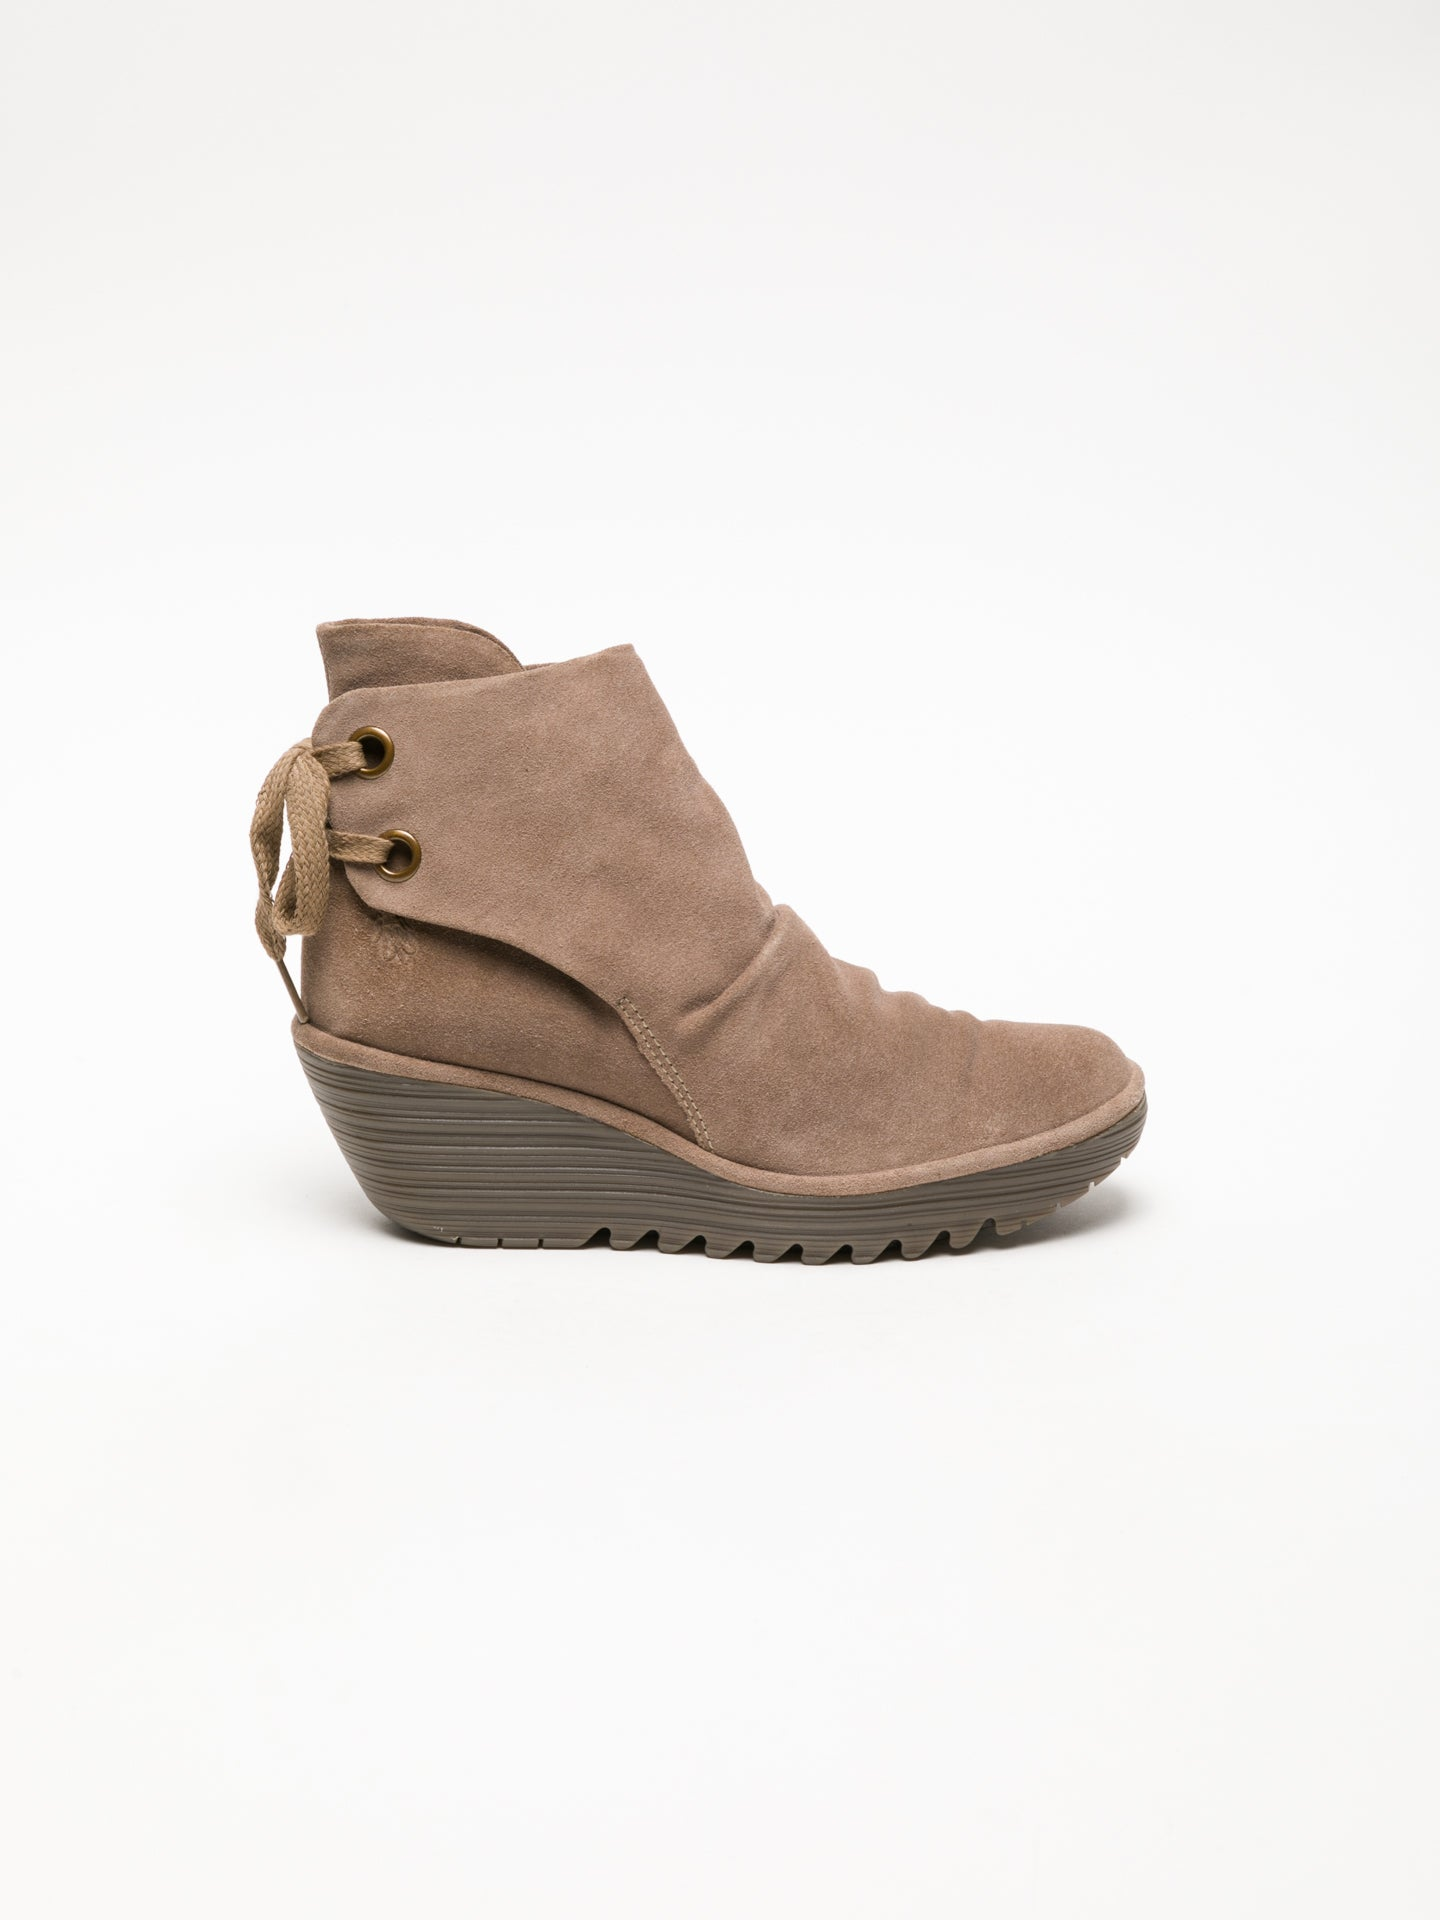 Fly London Tan Wedge Ankle Boots